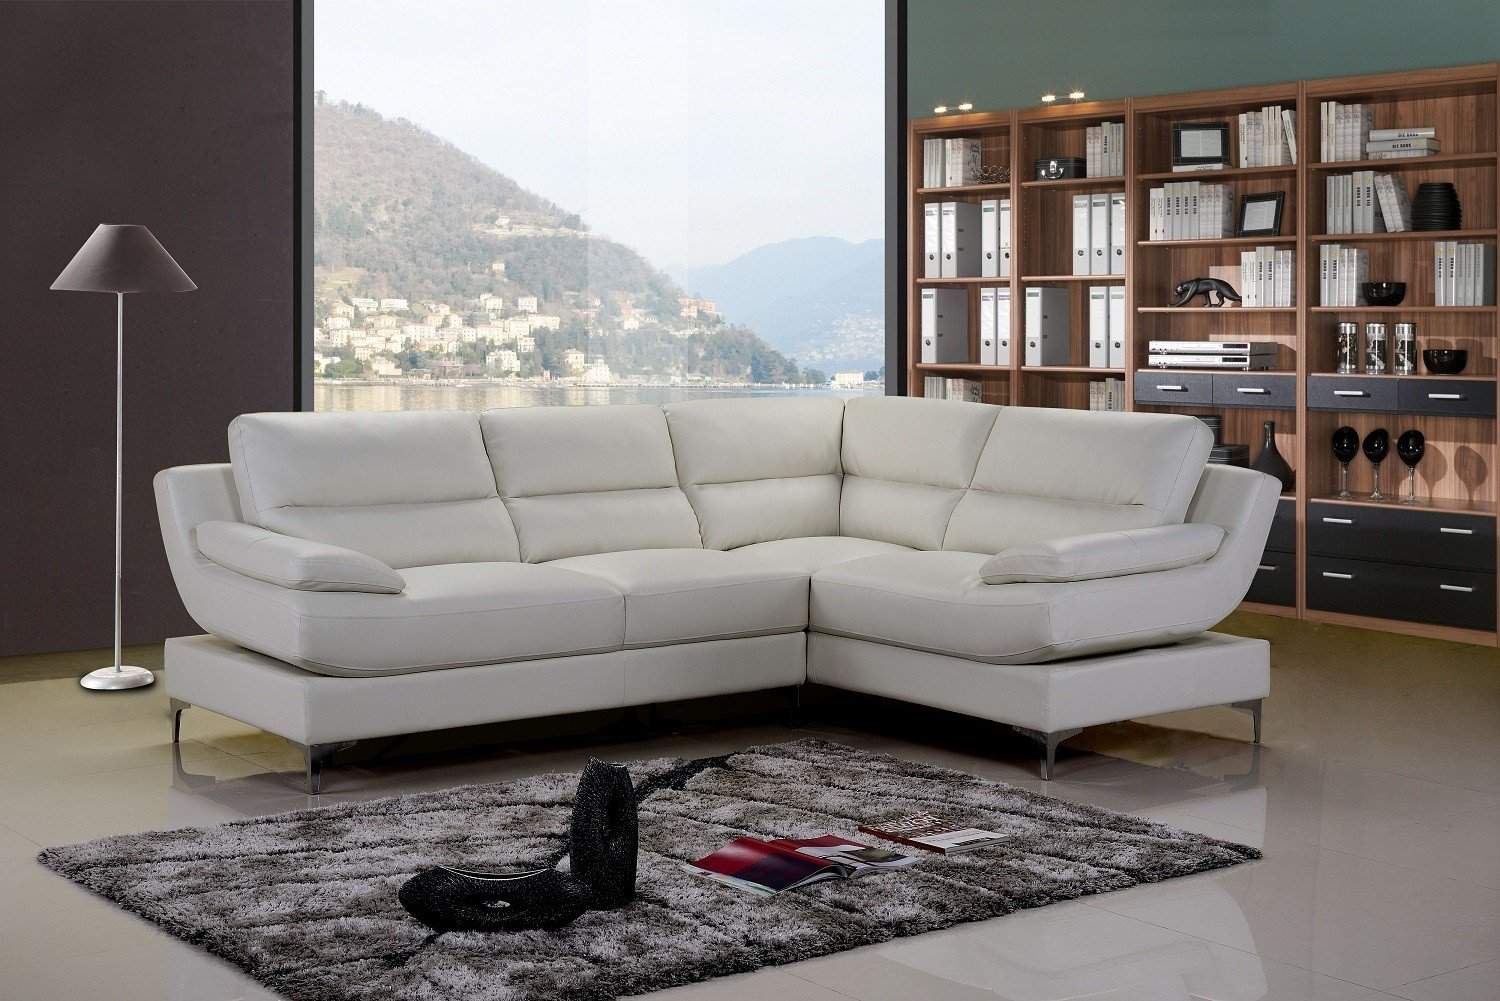 Amazing Monza White Leather Corner Sofa Right Hand white leather corner sofa